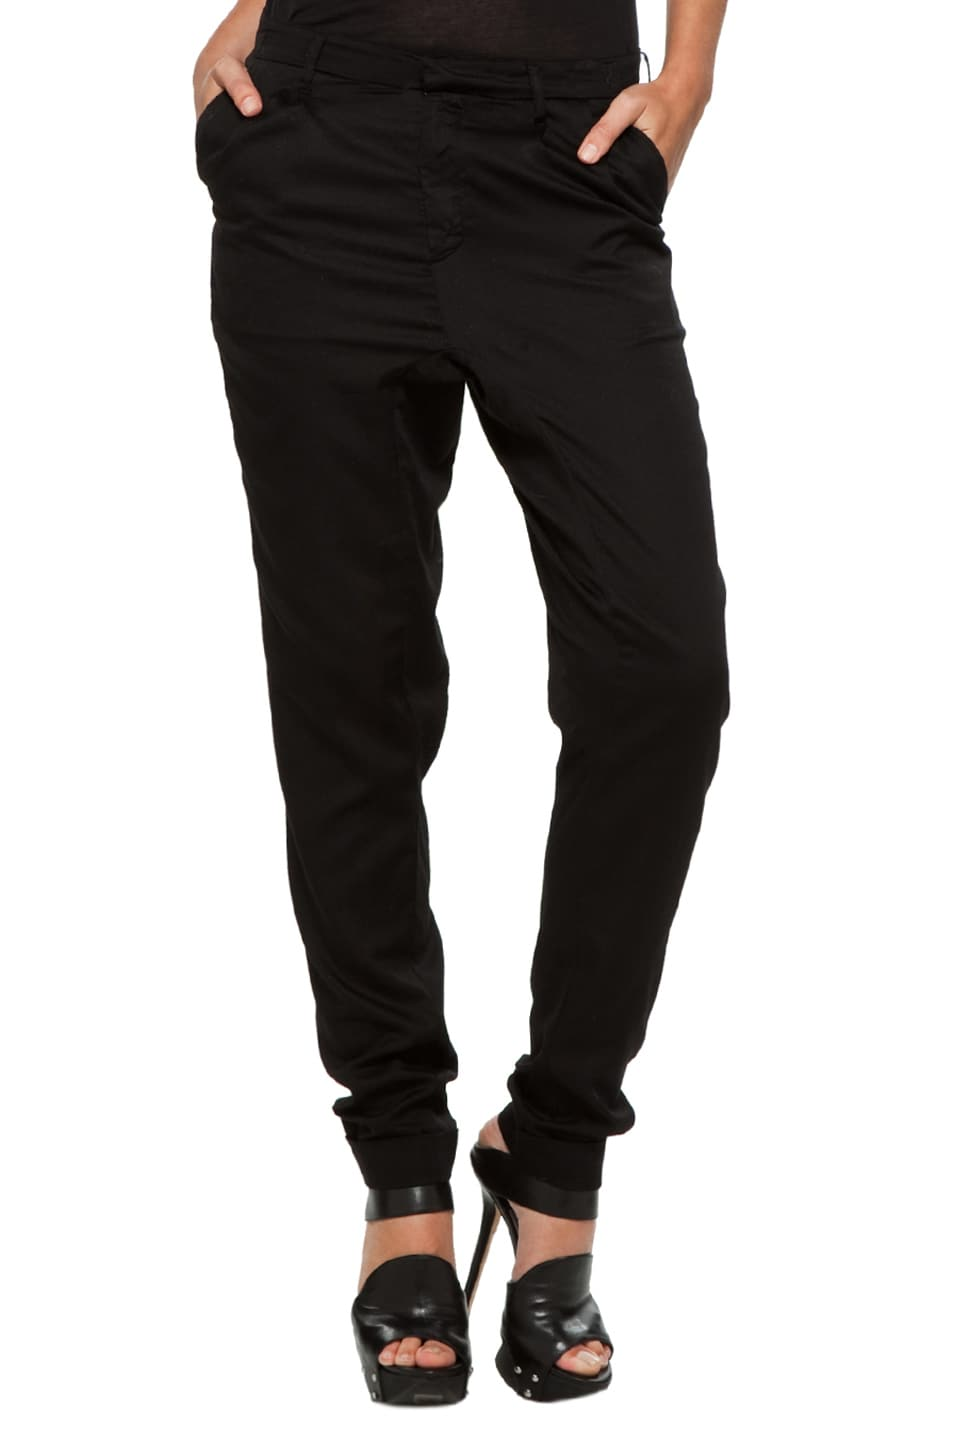 Image 1 of Fifth Avenue Shoe Repair Low Crotch Chino in Black